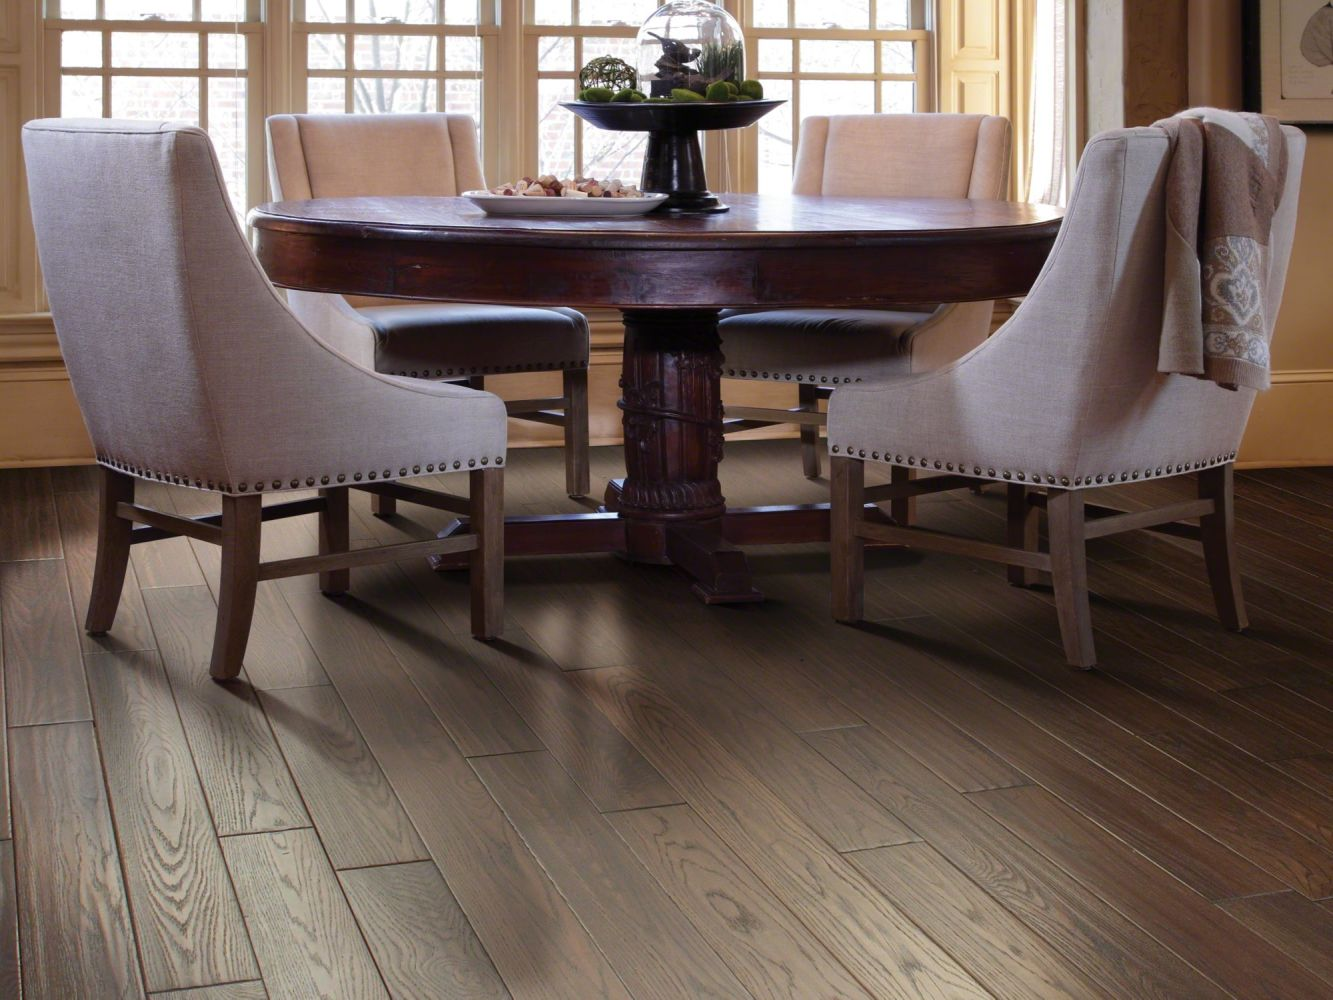 Shaw Floors Shaw Design Center Coldwater Creek Tobler's Brown 00436_DC225